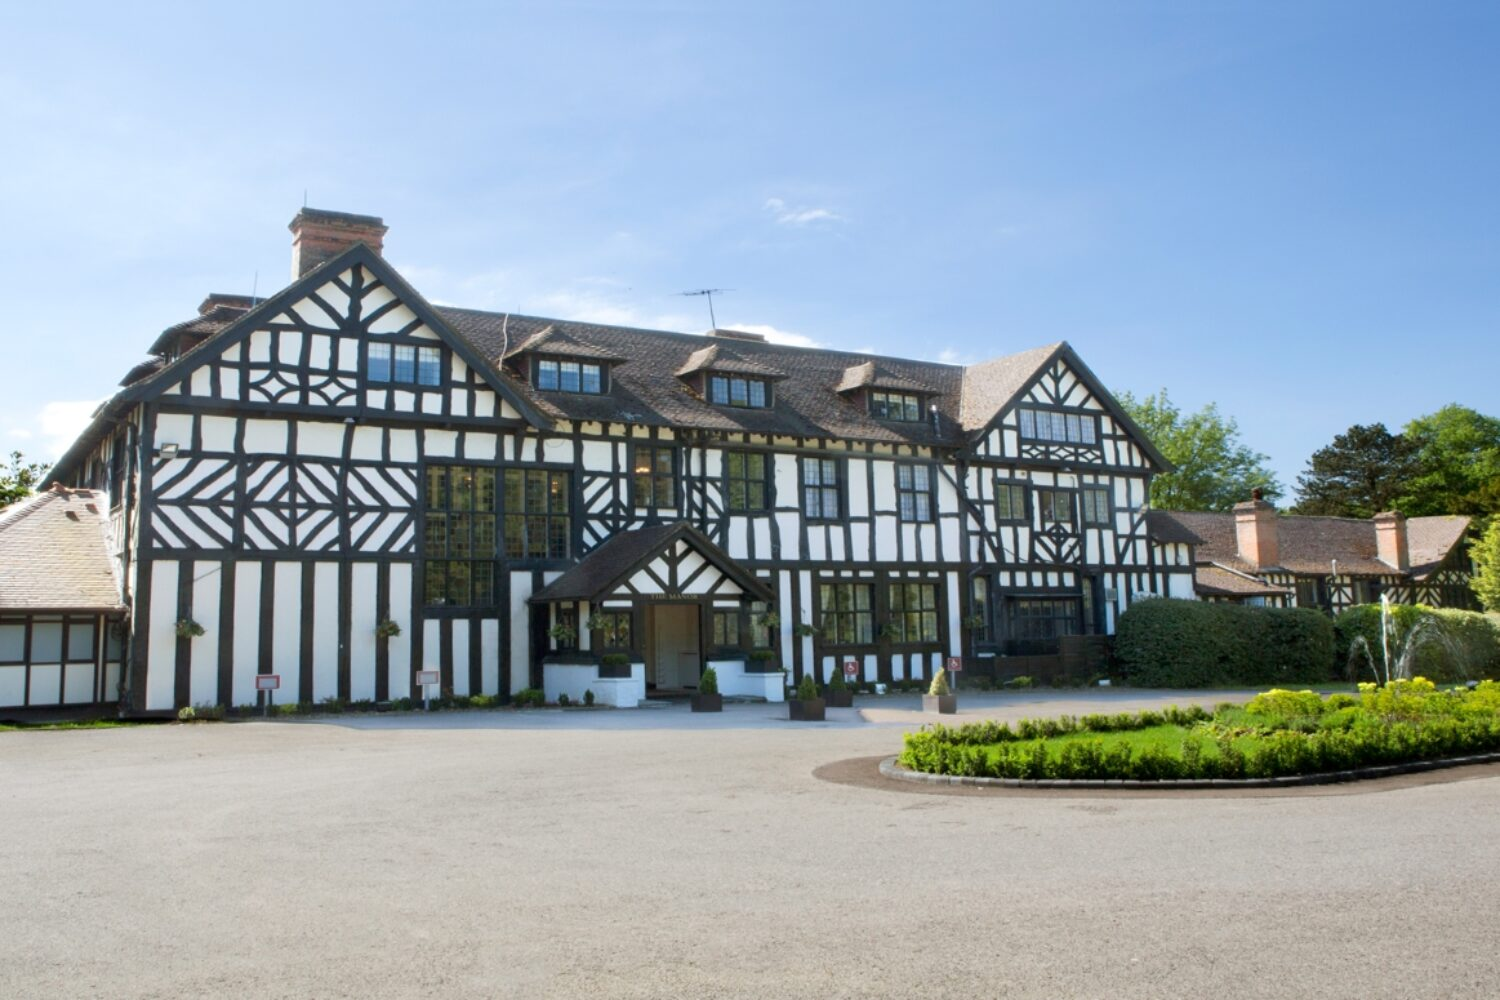 The Manor at Elstree